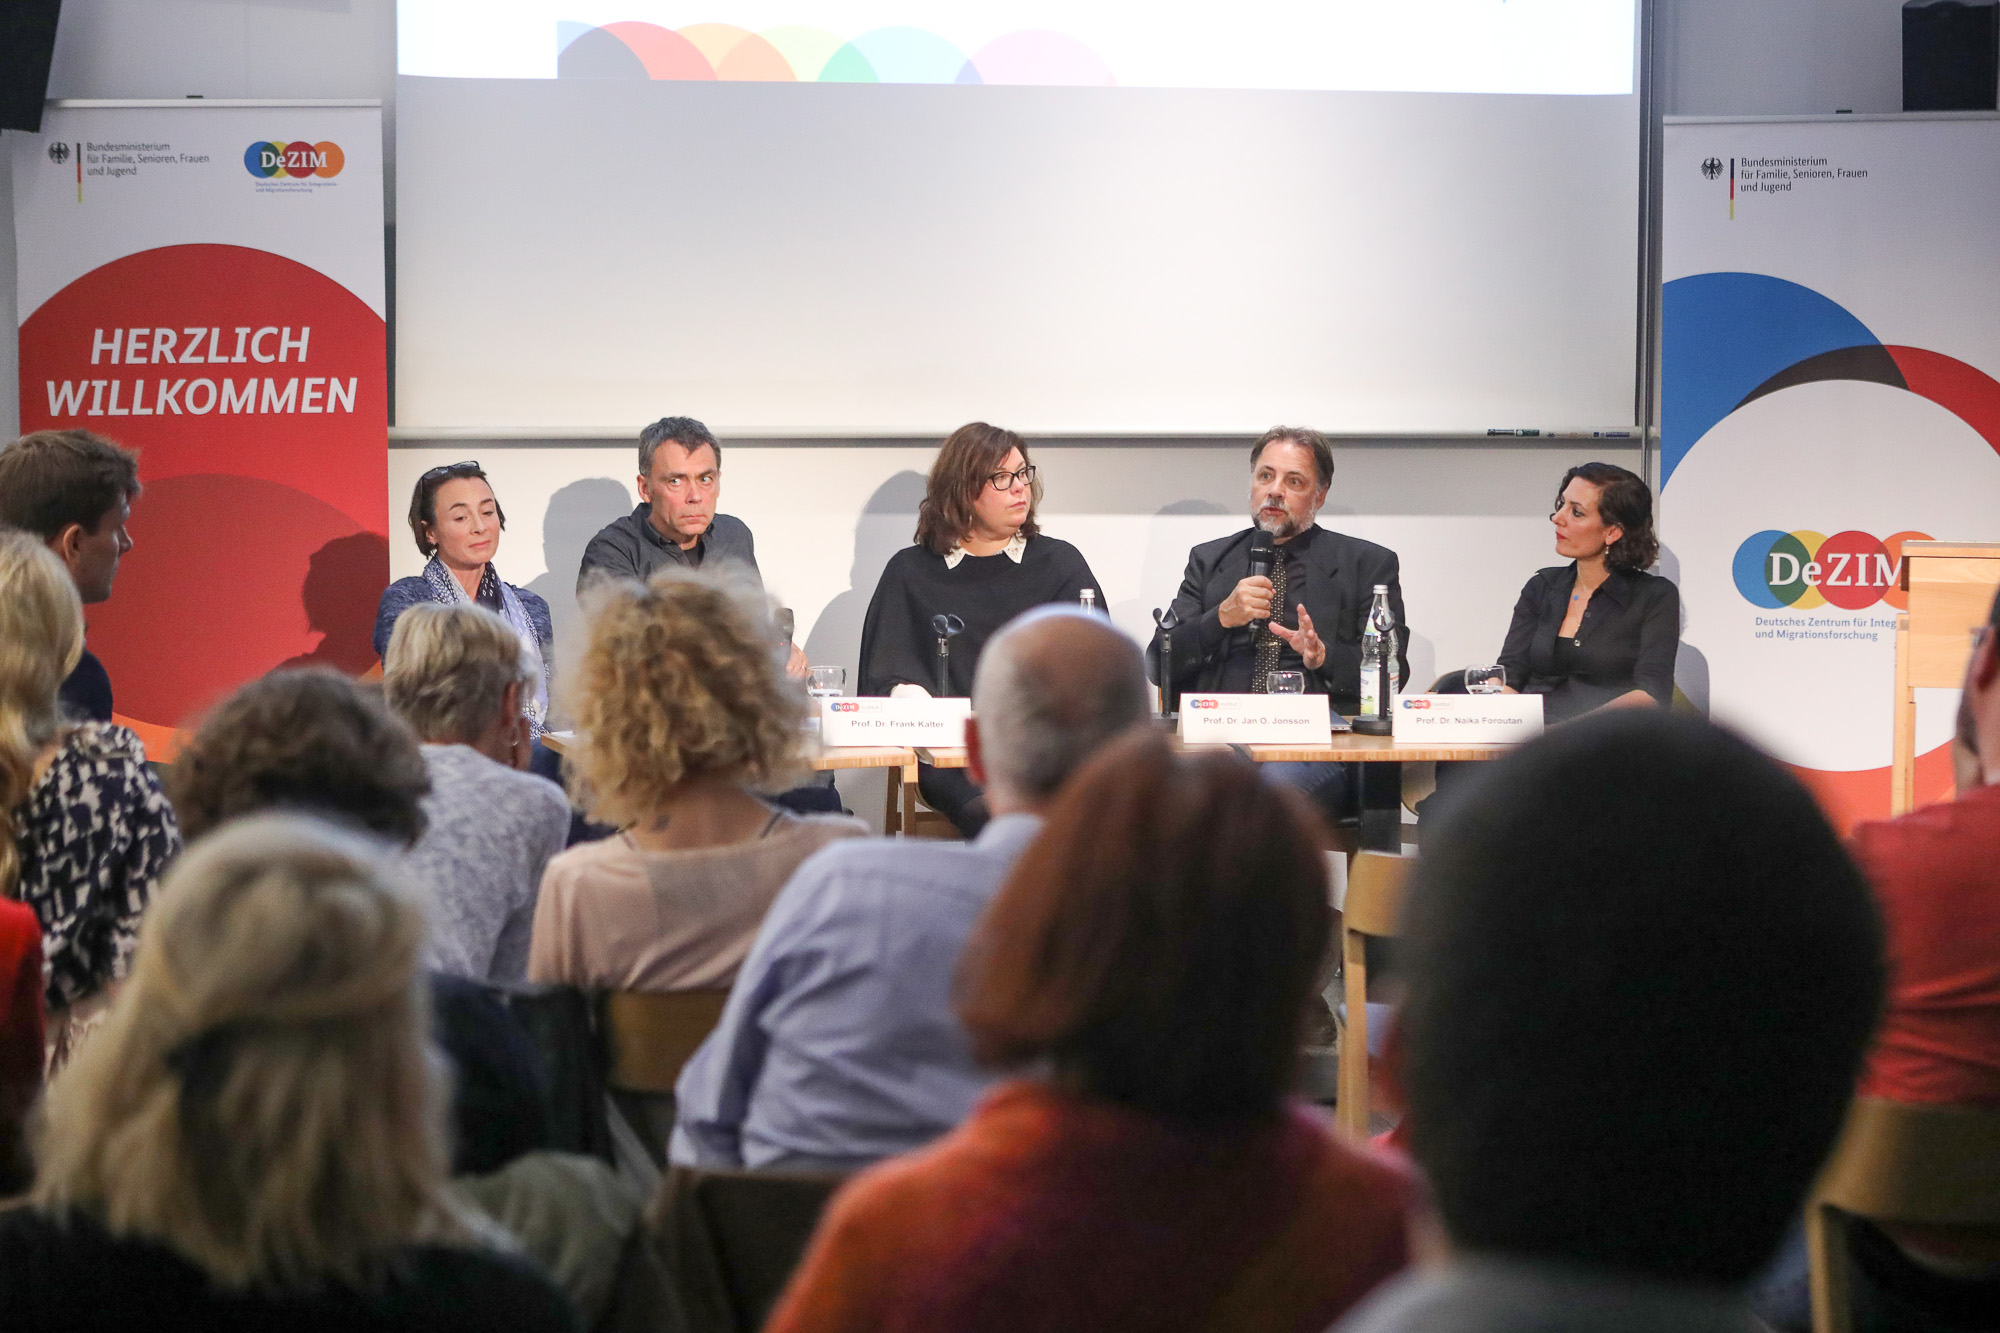 The panel at the launch of Growing Up in Diverse Societies at De-ZIM. Photograph by Konstantin Fastmann / De-ZIM.